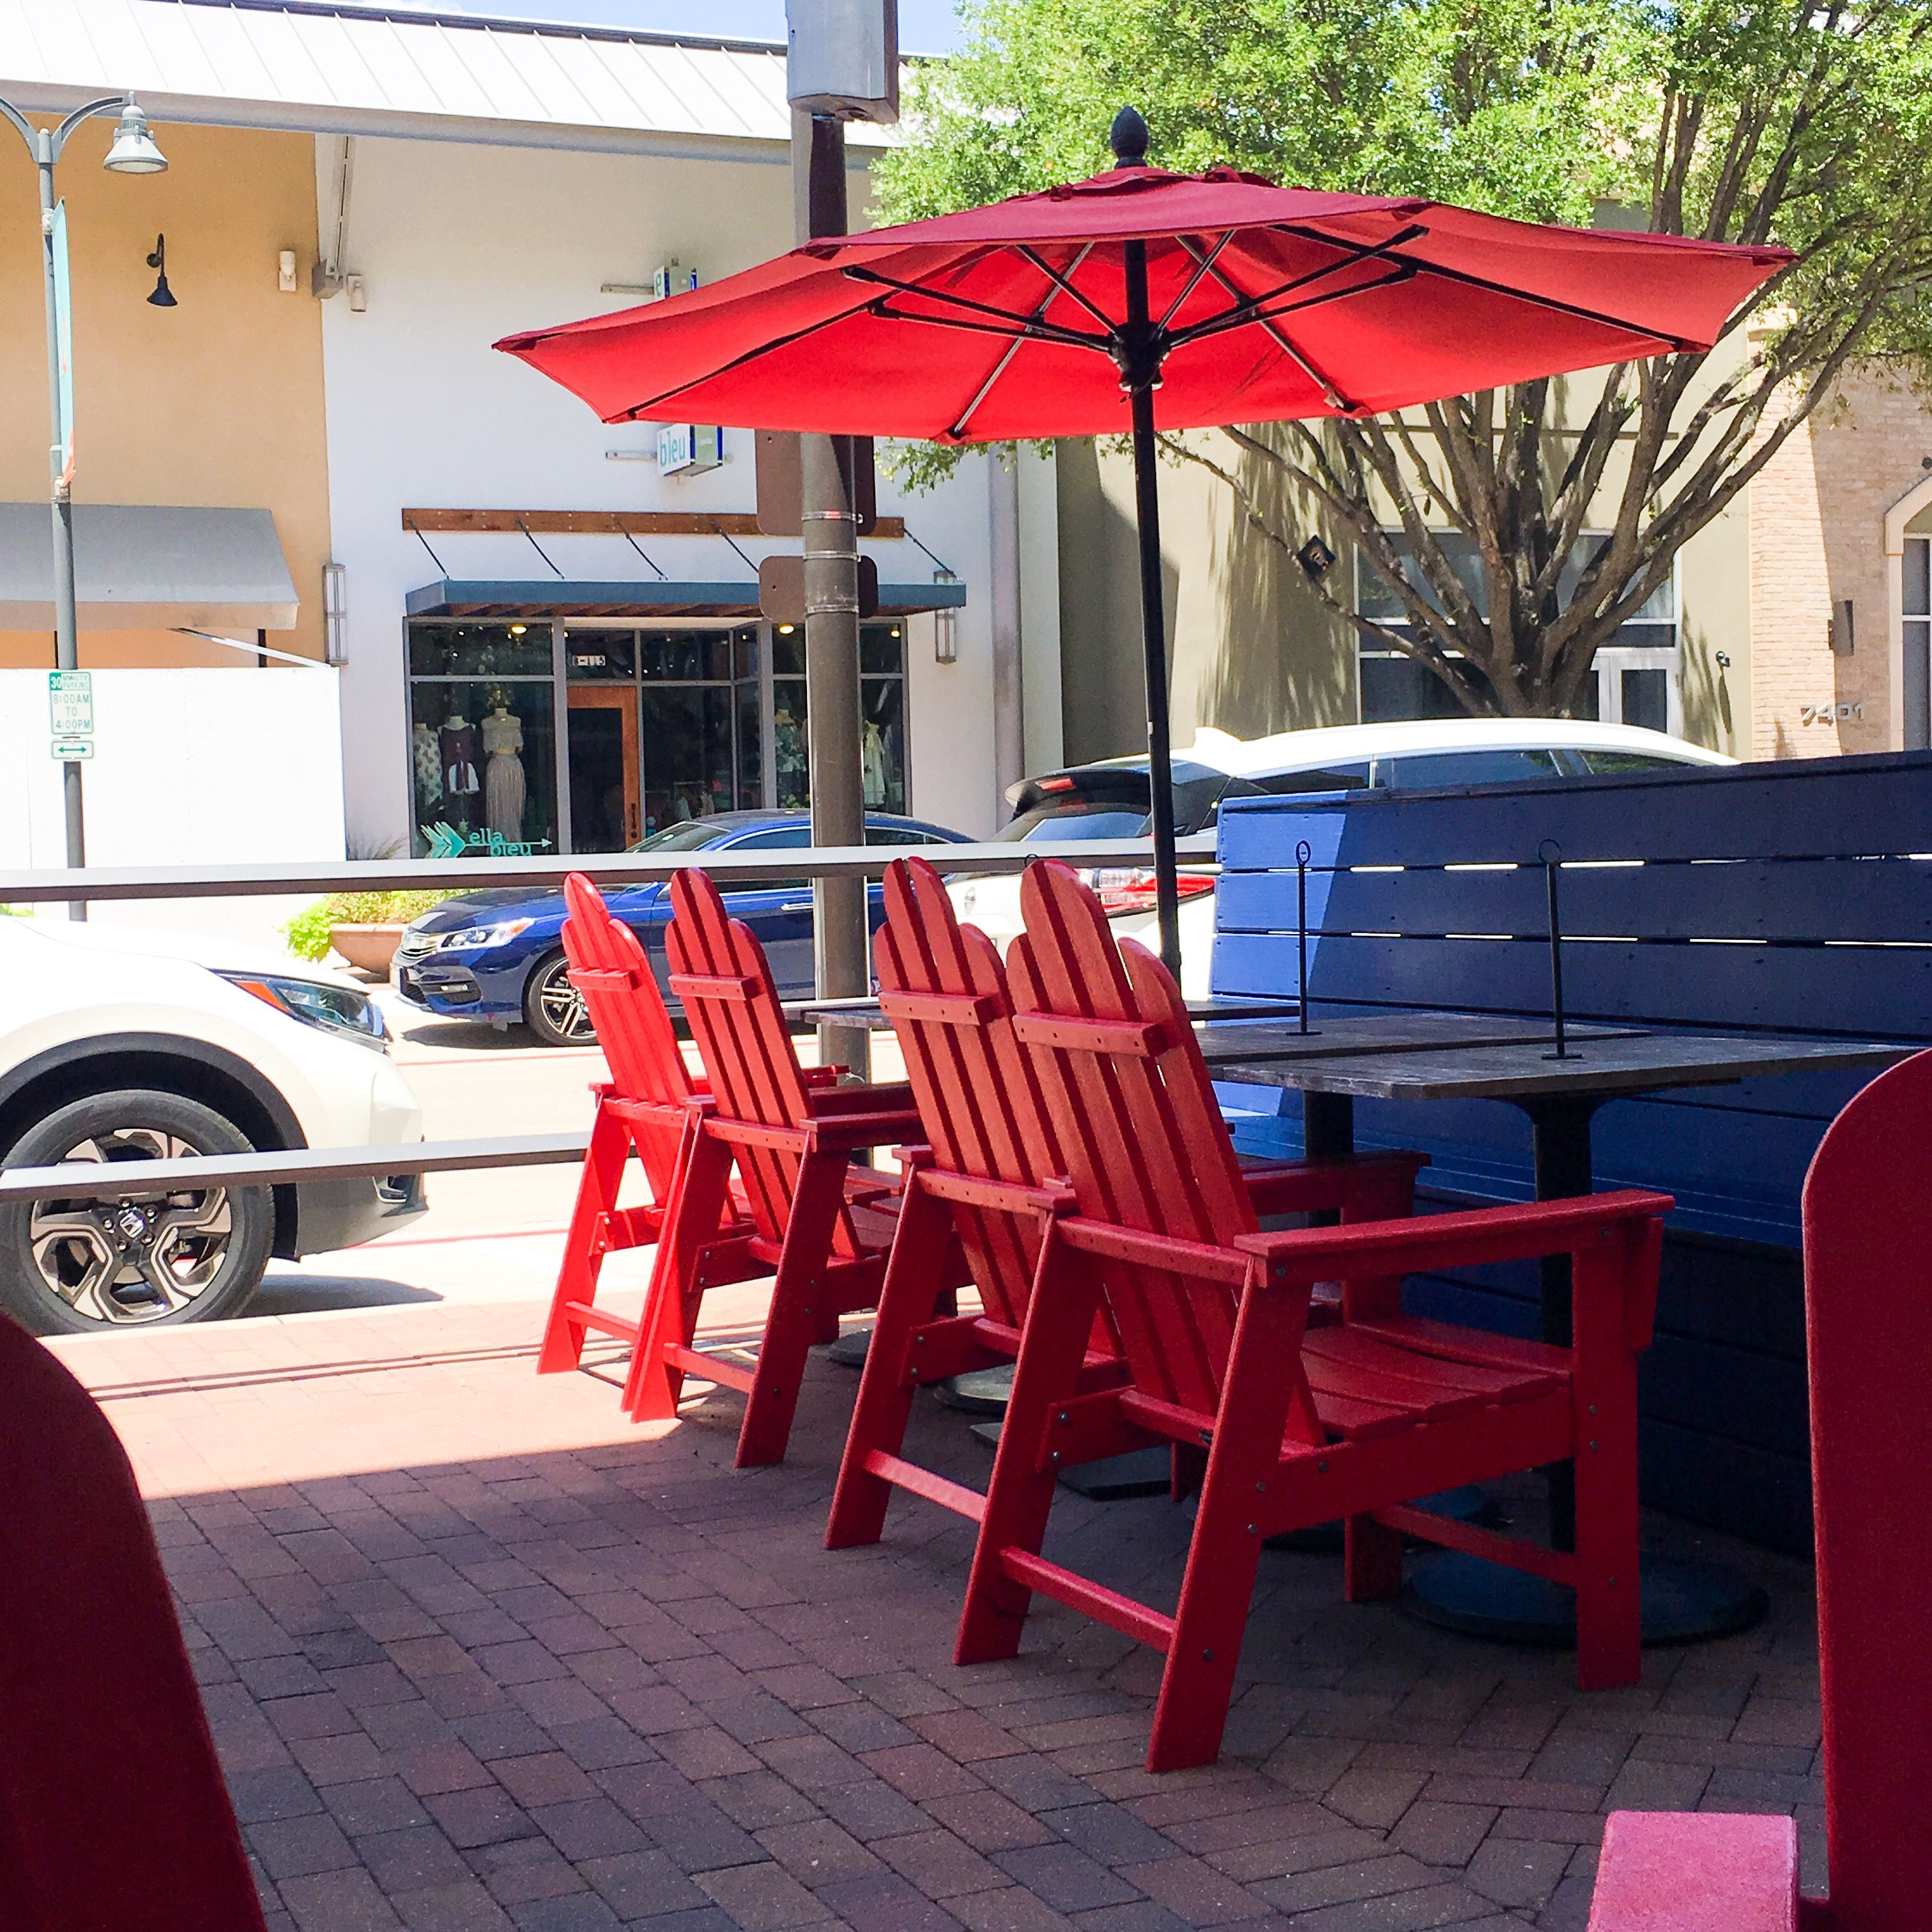 East hampton sandwich co outdoor bench and chair seating